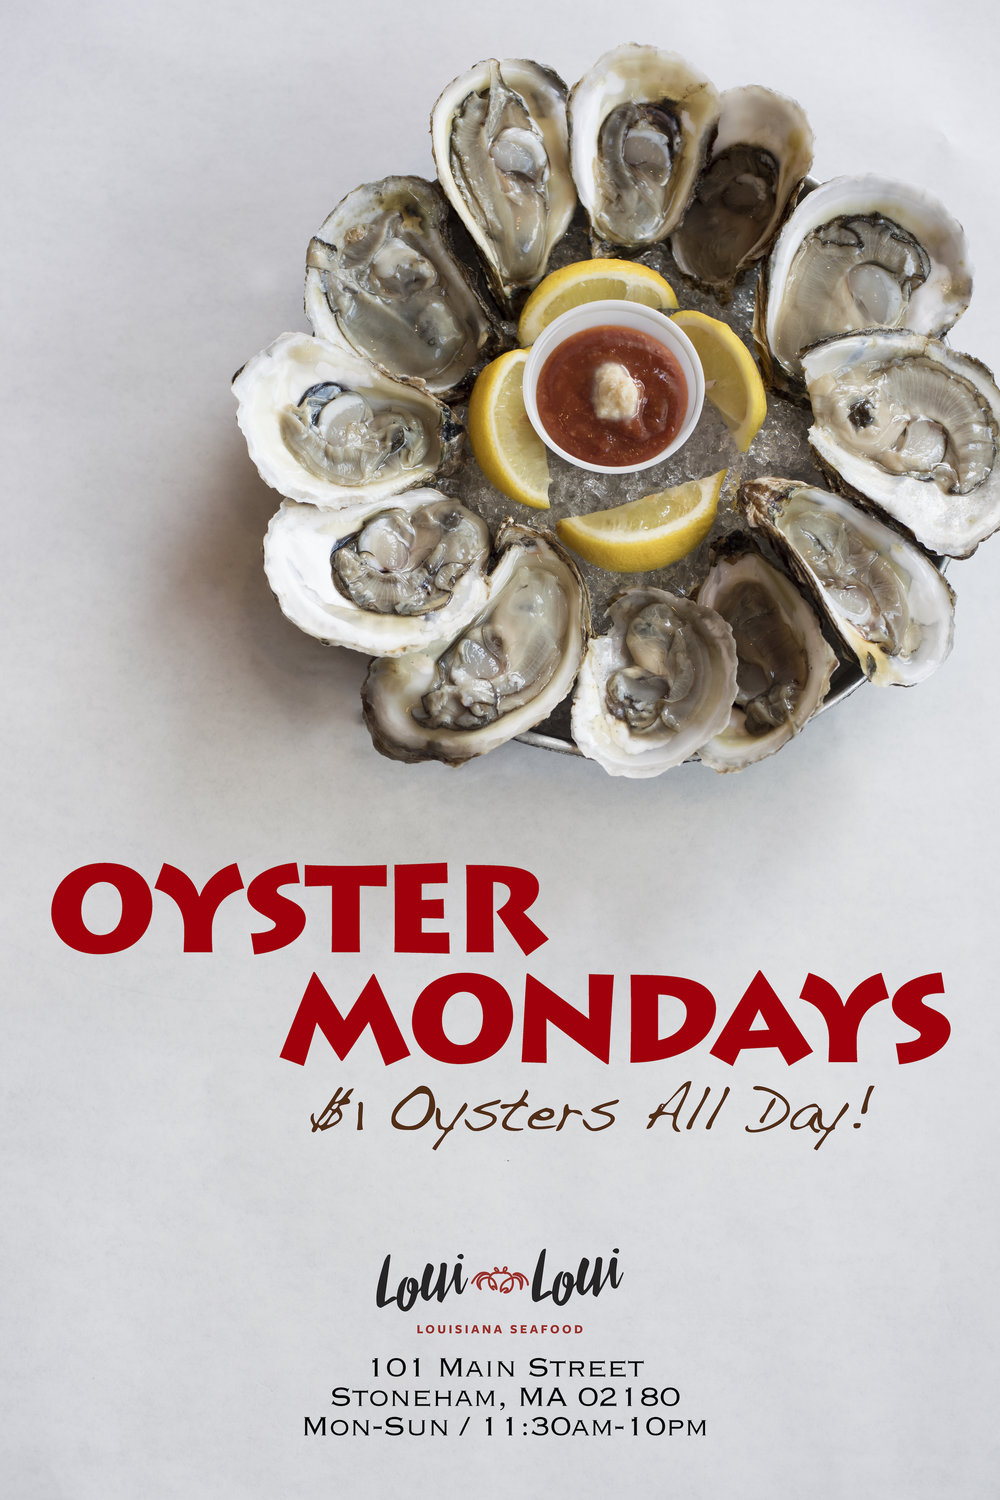 Enjoy $1 Oysters All Day Monday   -